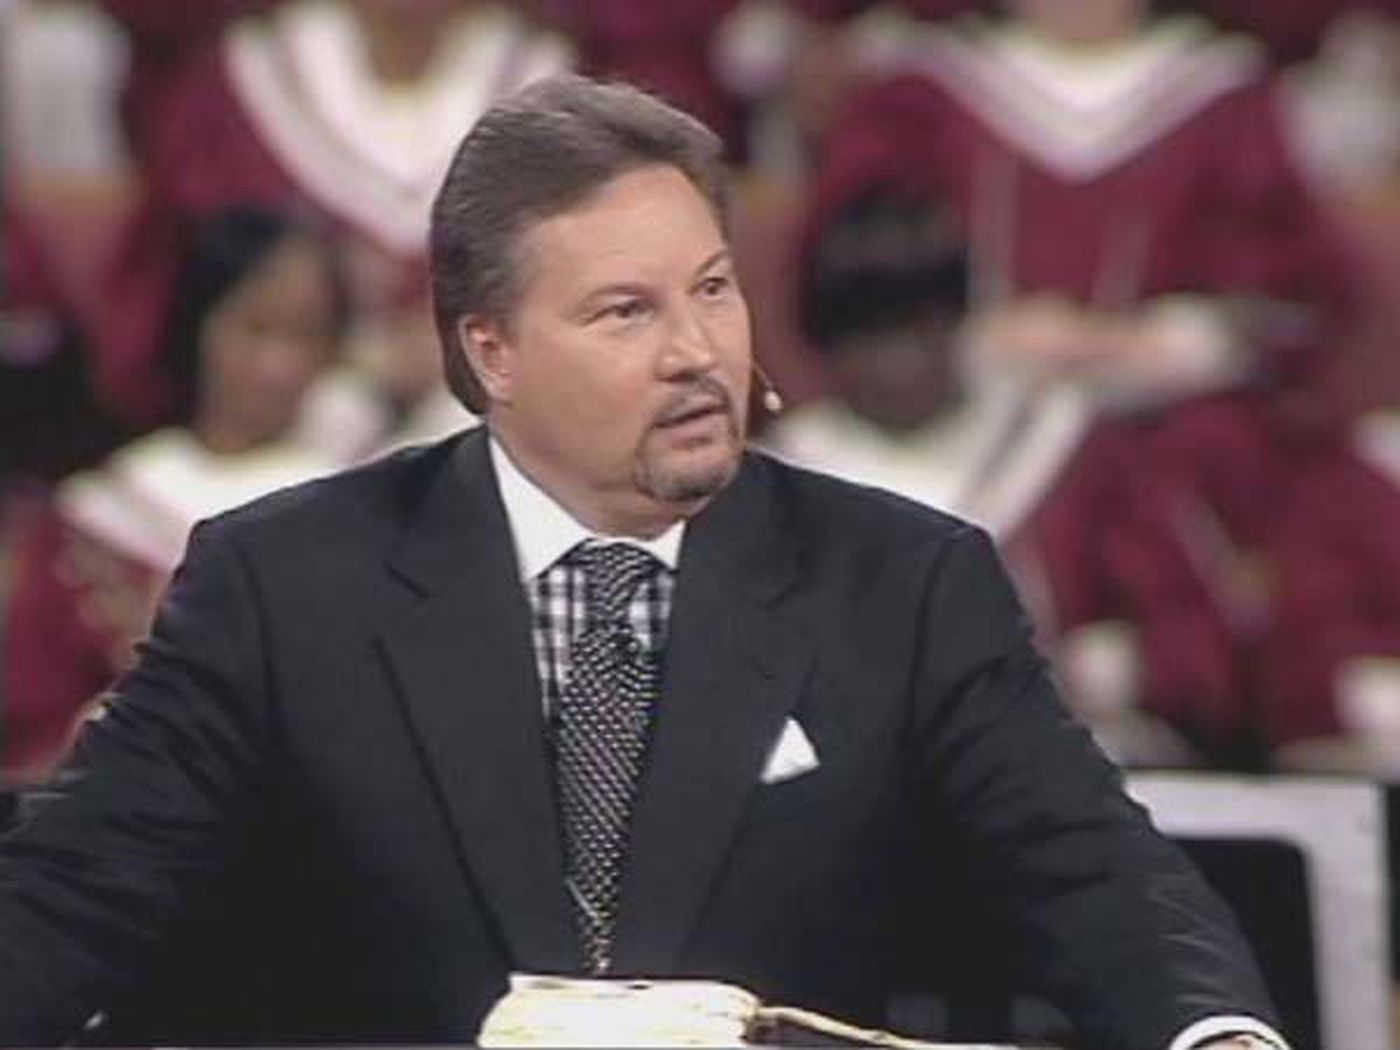 Donnie Swaggart: SBN Presents Donnie Swaggart – Billy Knight